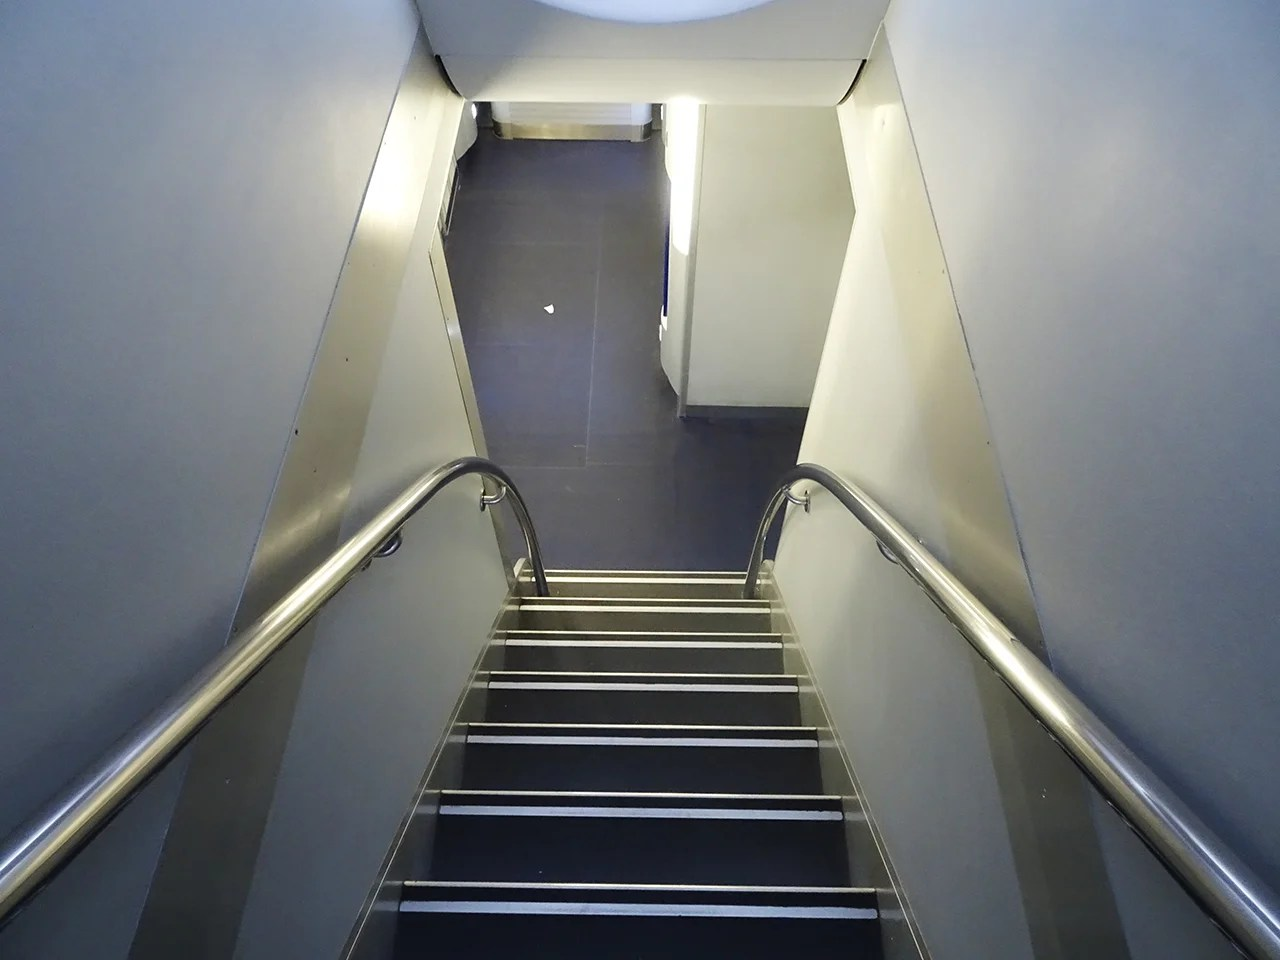 What is down these stairs?